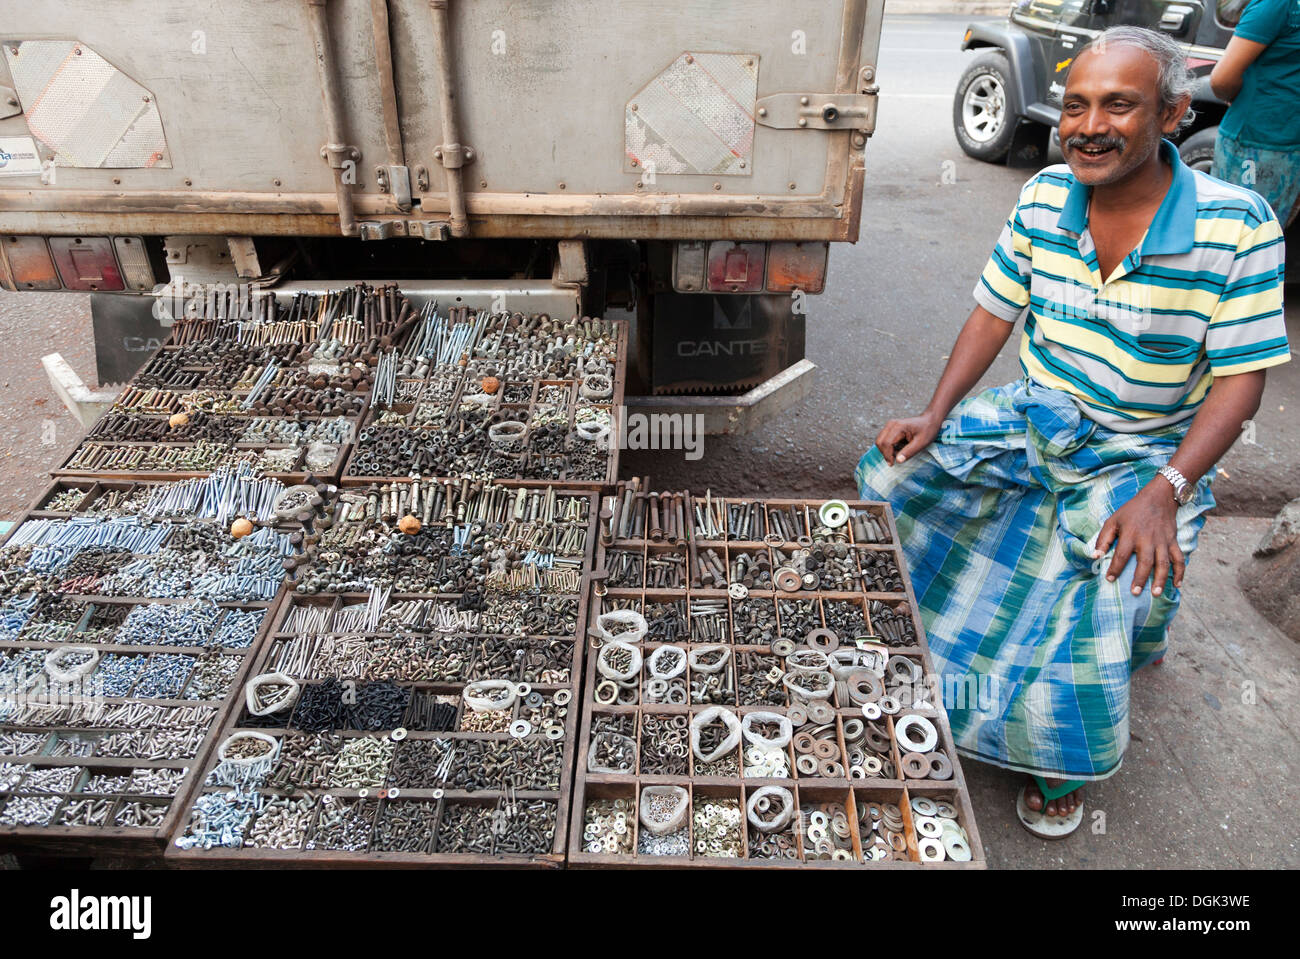 Man selling nuts and bolts in the Indian Market in Yangon in Myanmar. - Stock Image